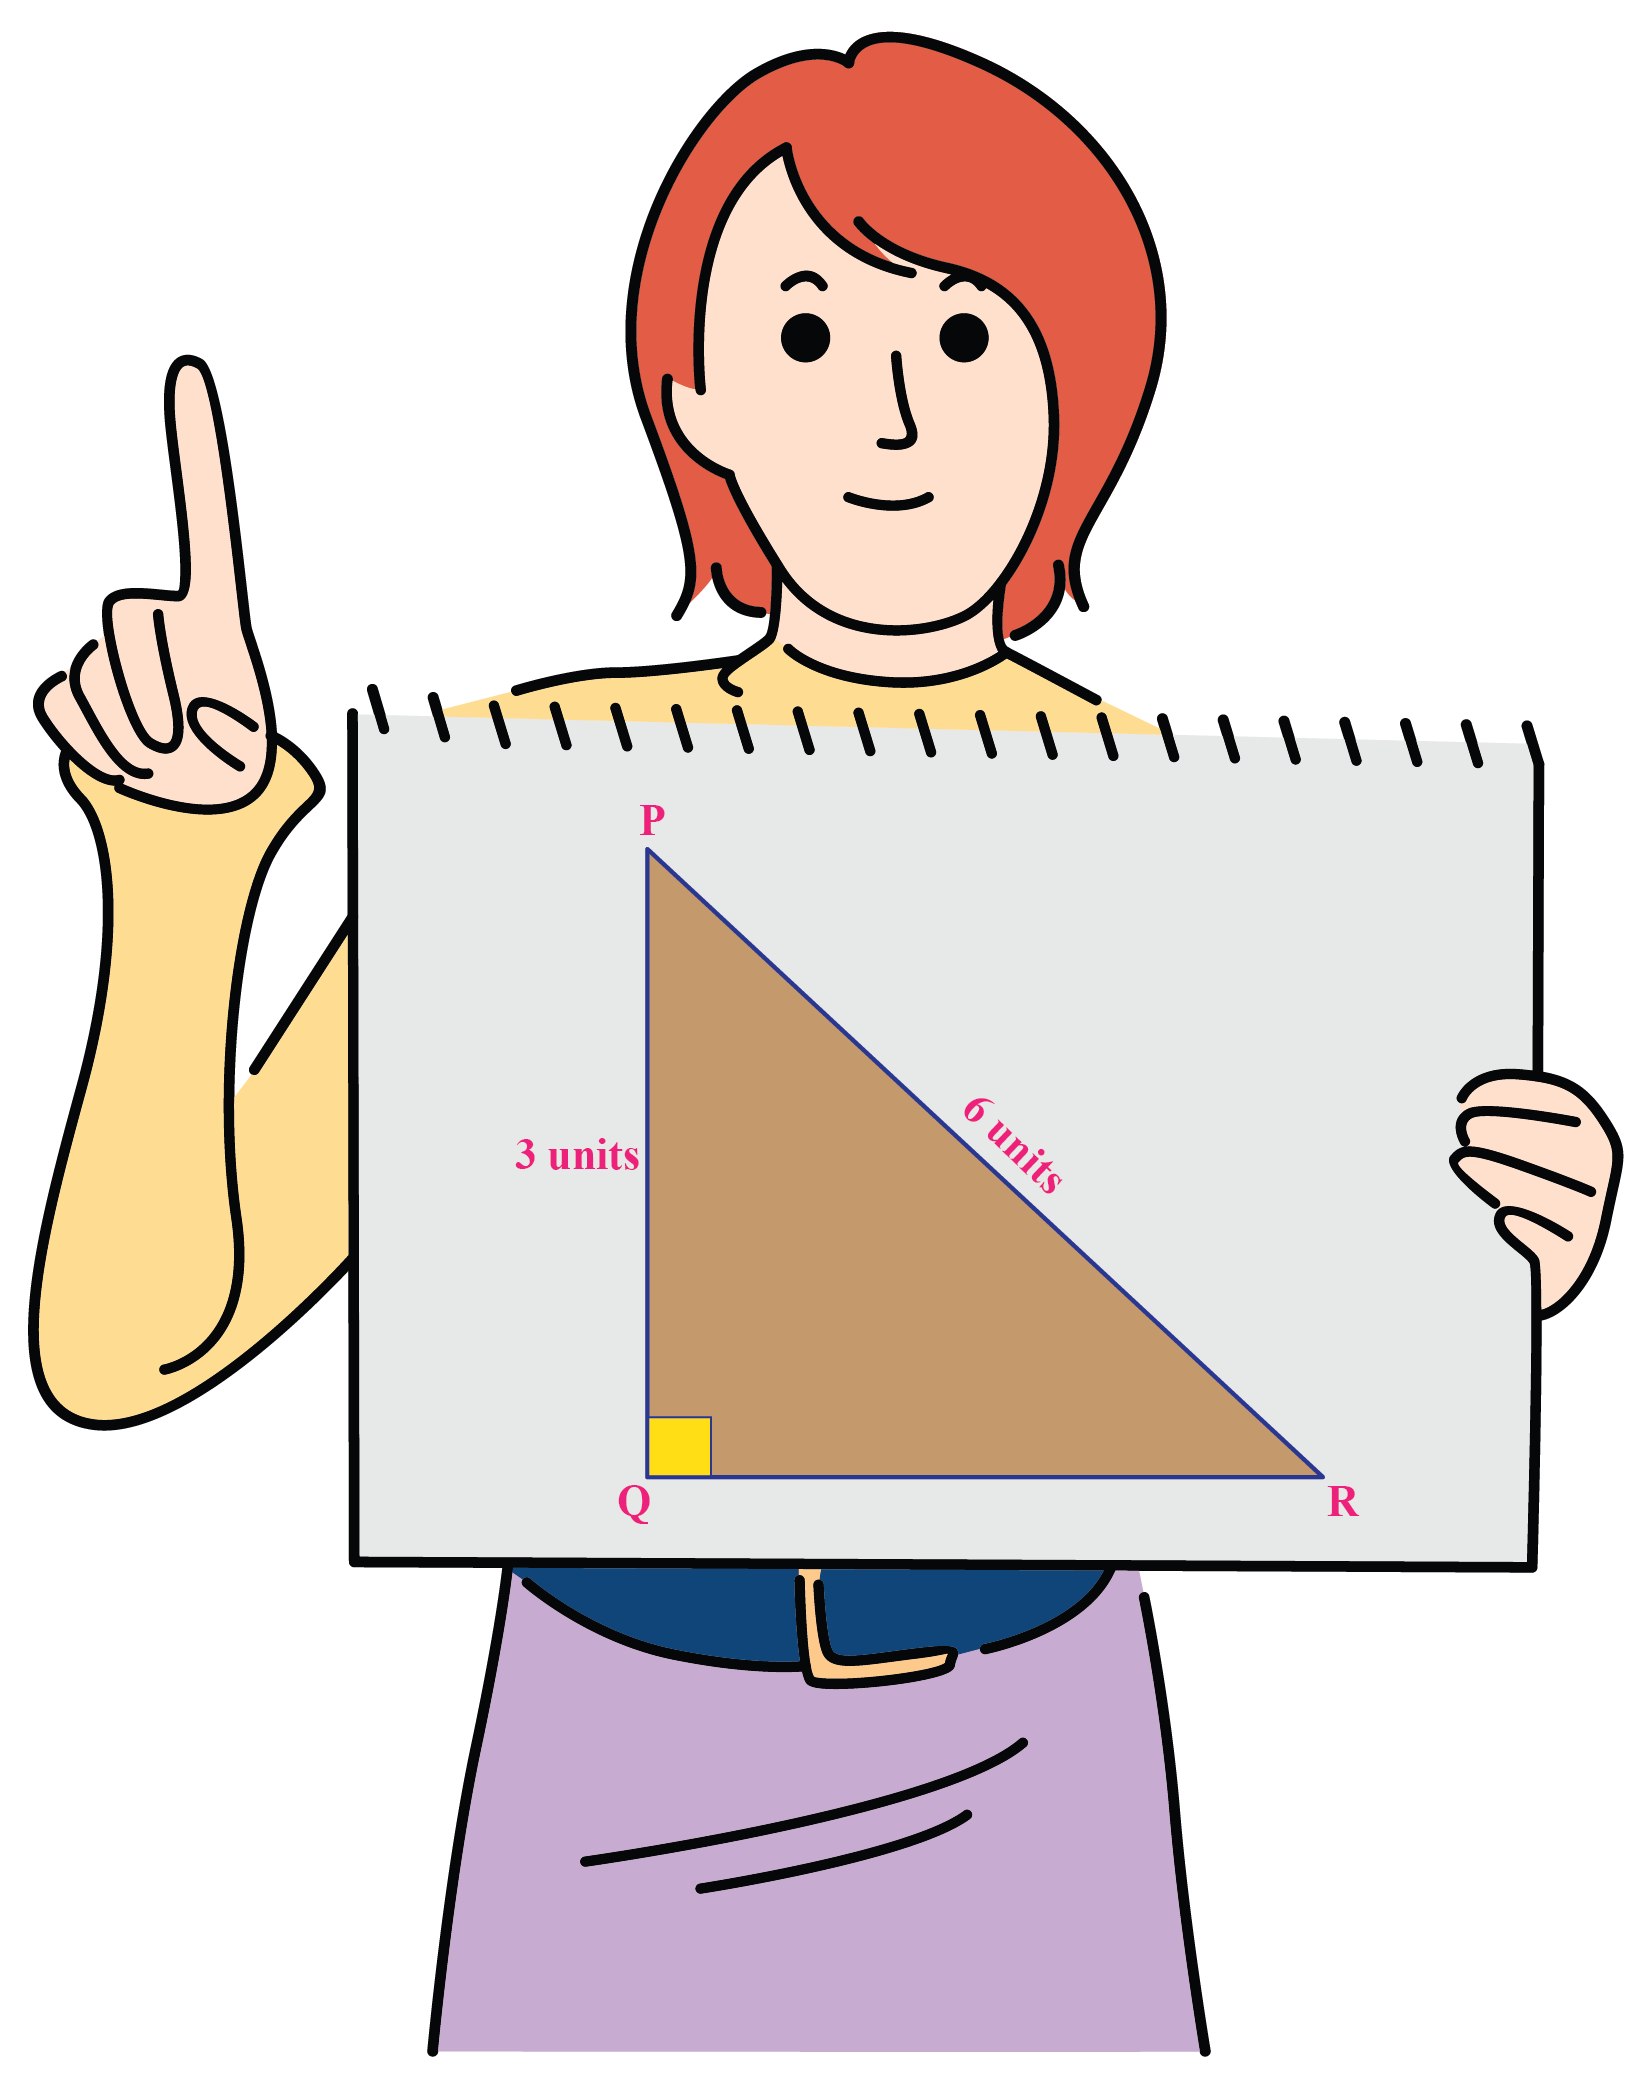 A girl wants to find the measure of two angles.